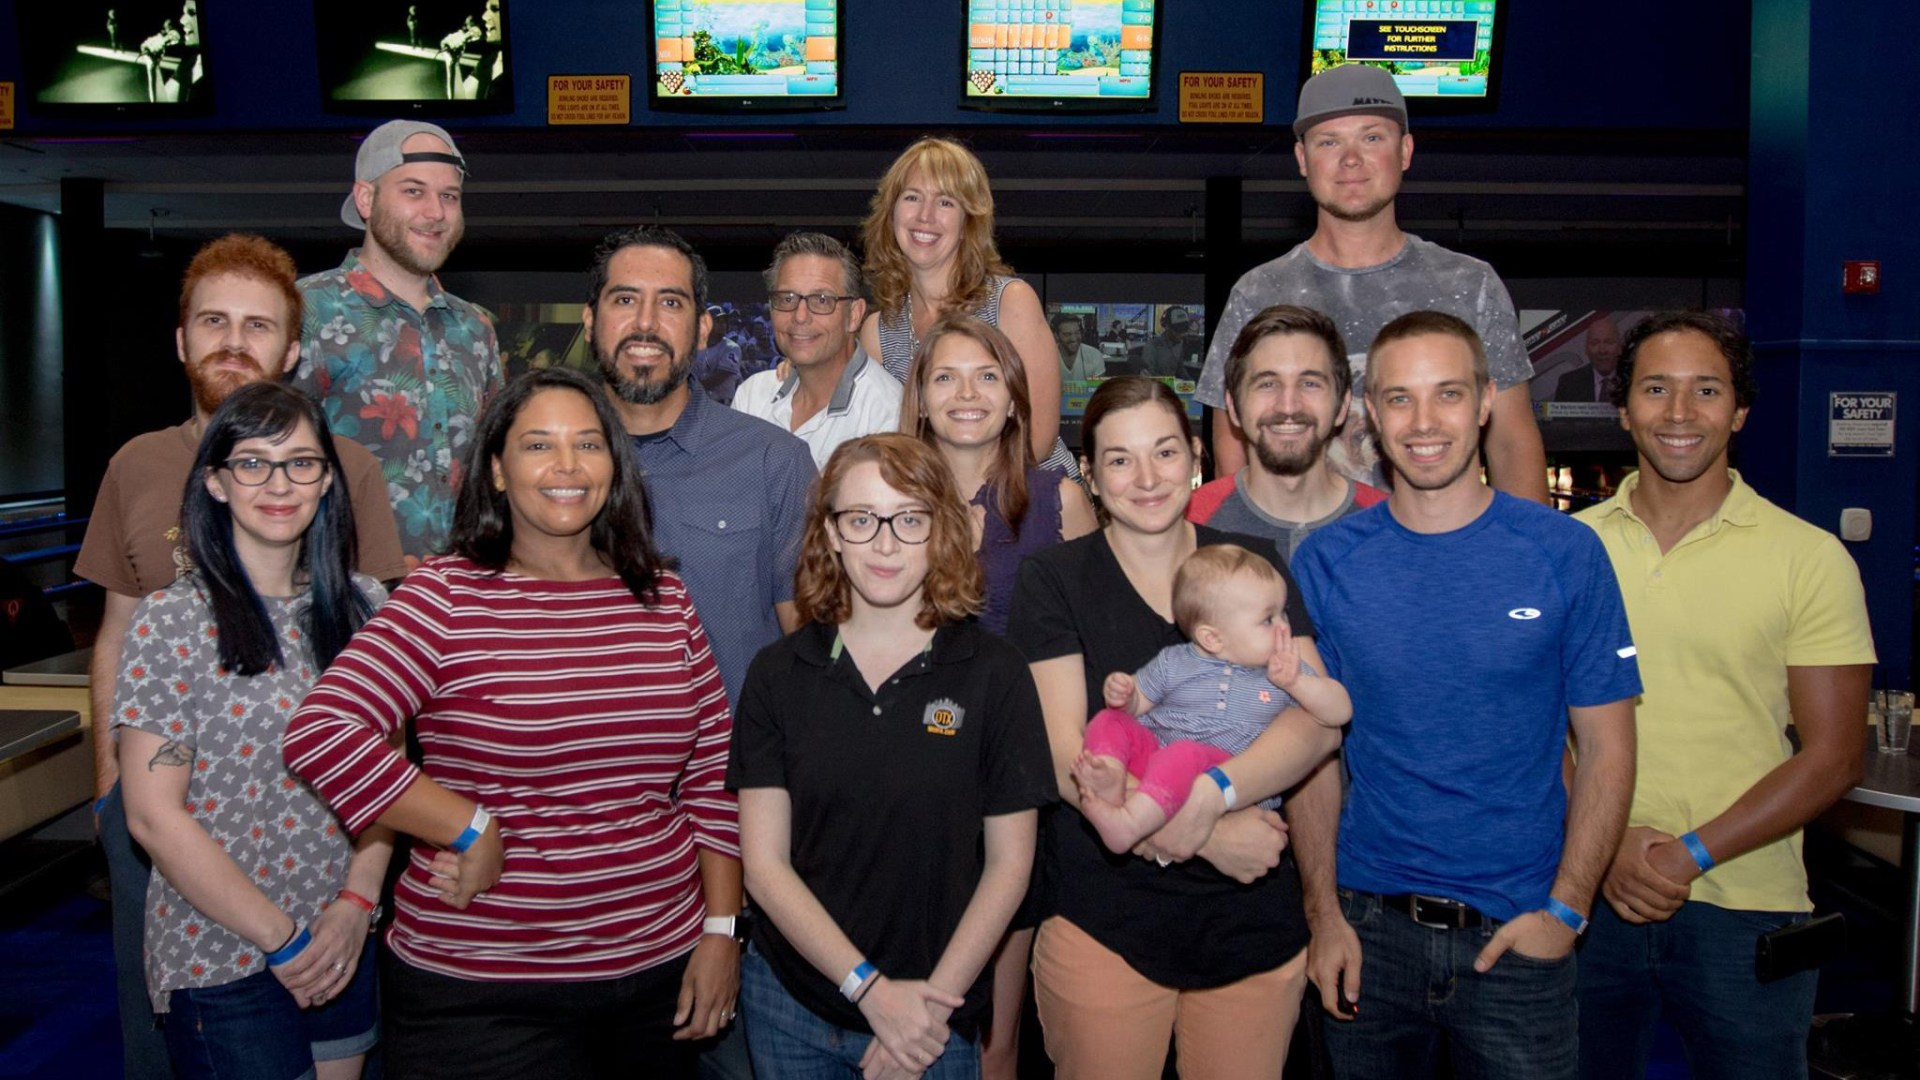 dtx crew bowling